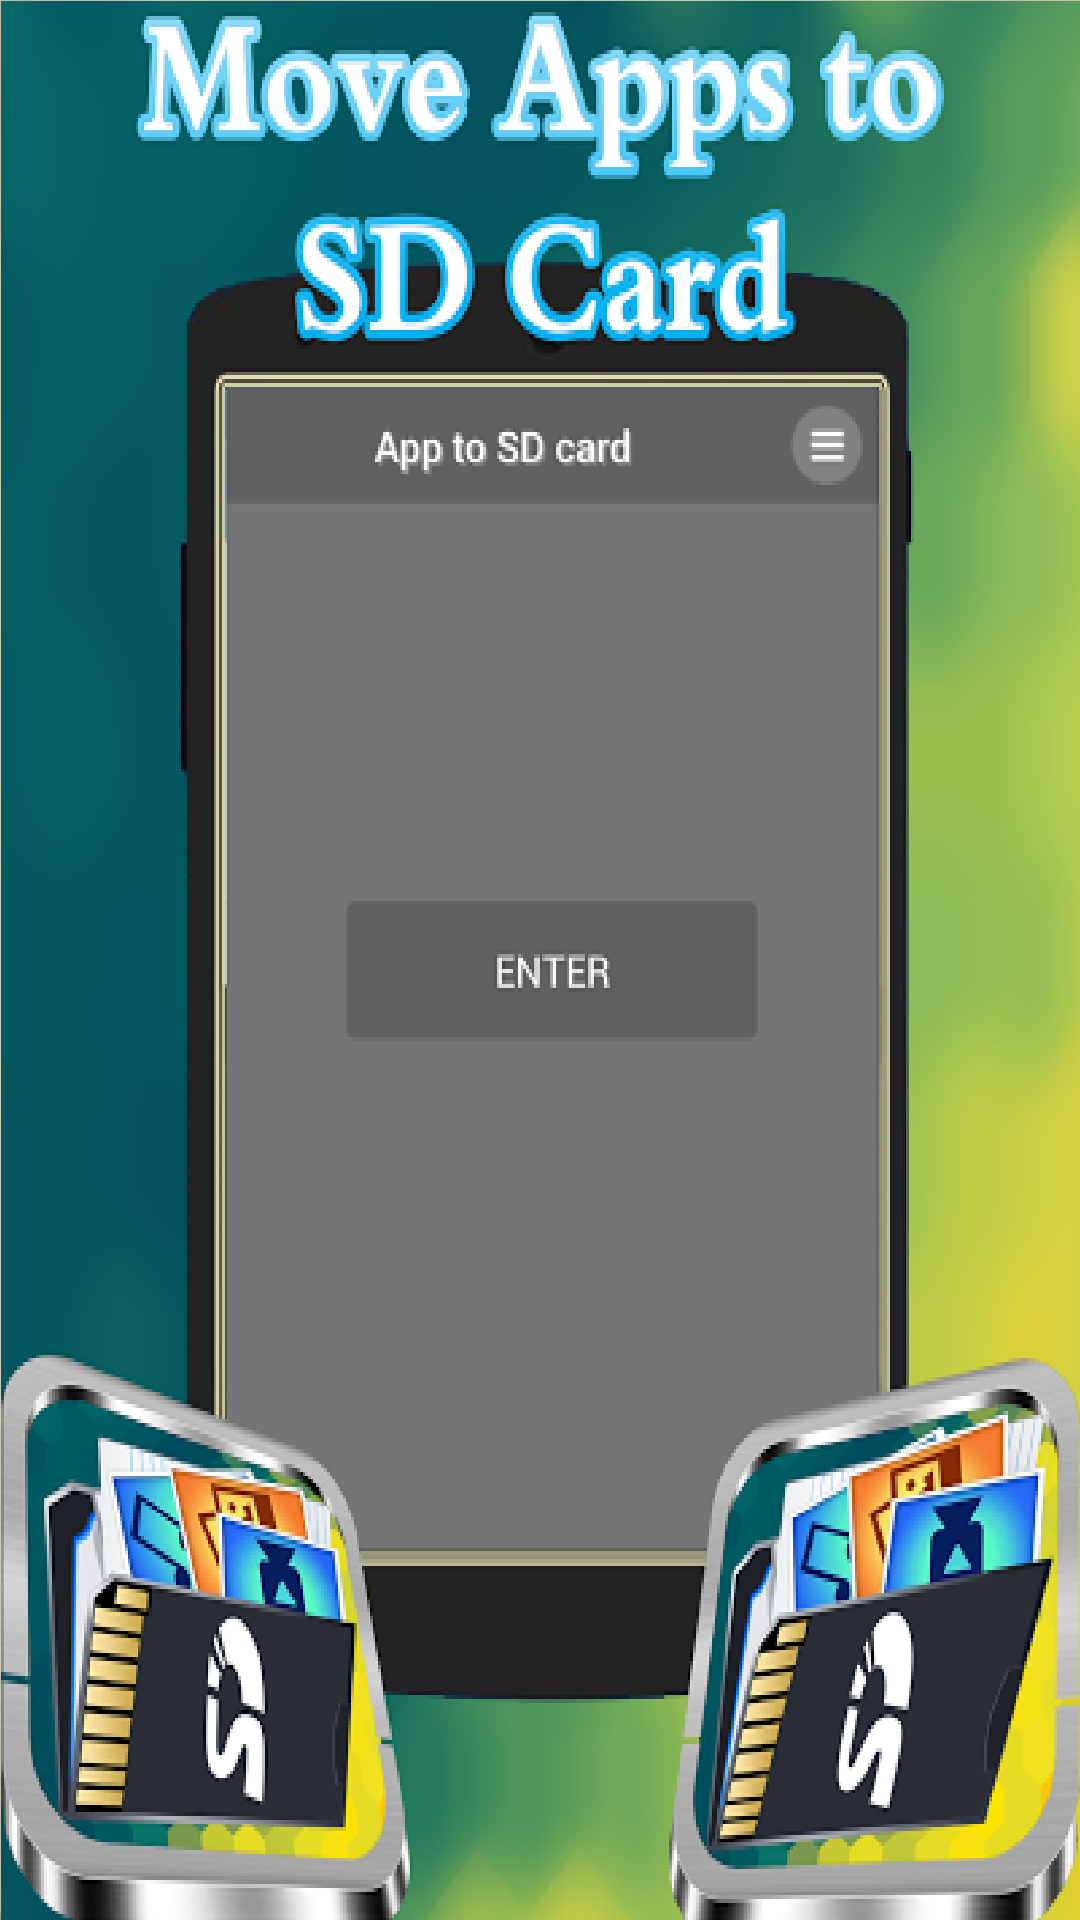 Amazon.com: Move Apps to SD Card Quikly: Appstore for Android